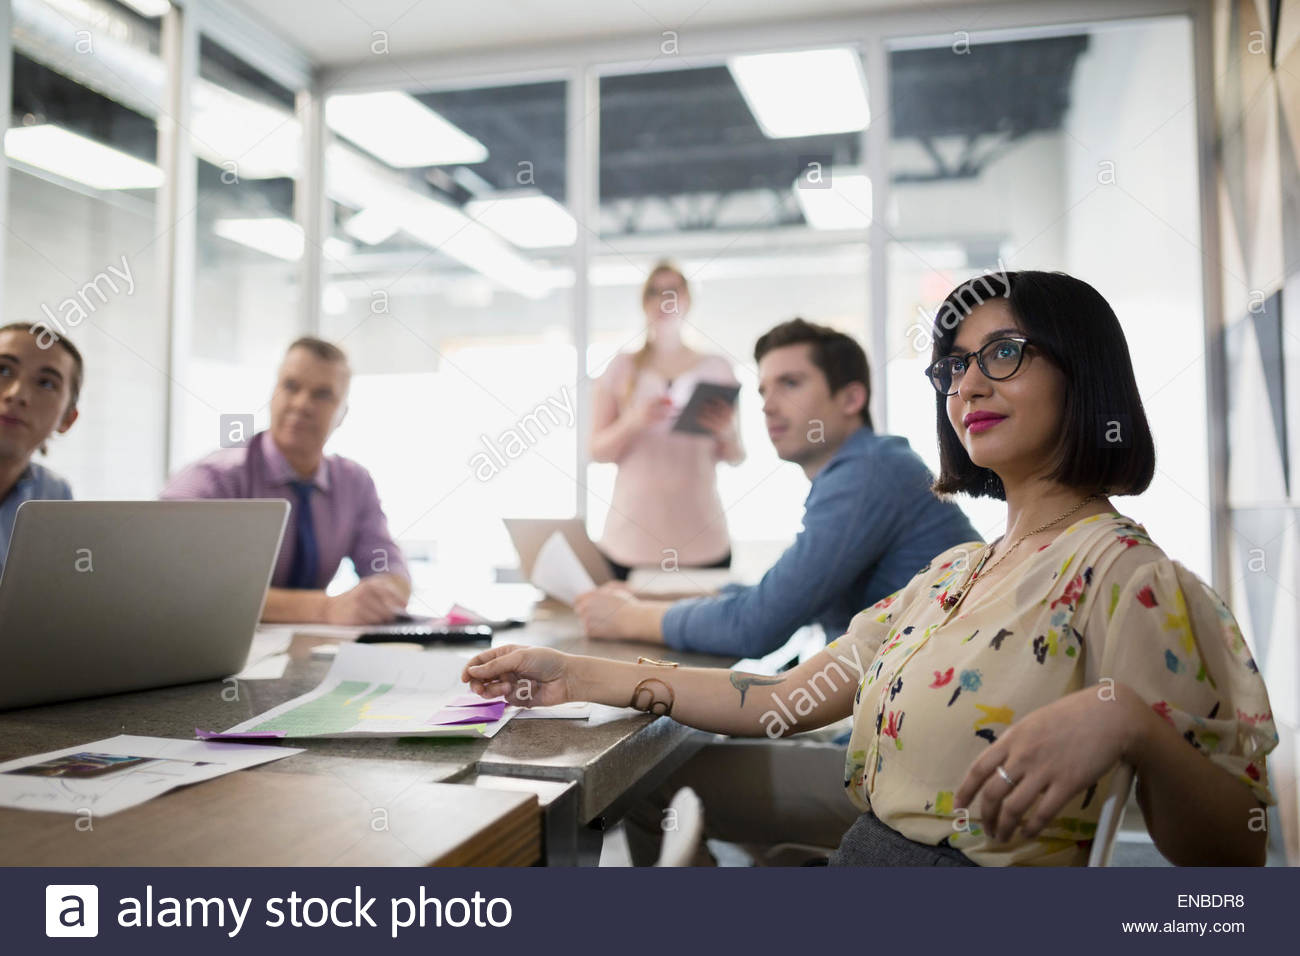 Smiling businesswoman in meeting conference room Stock Photo